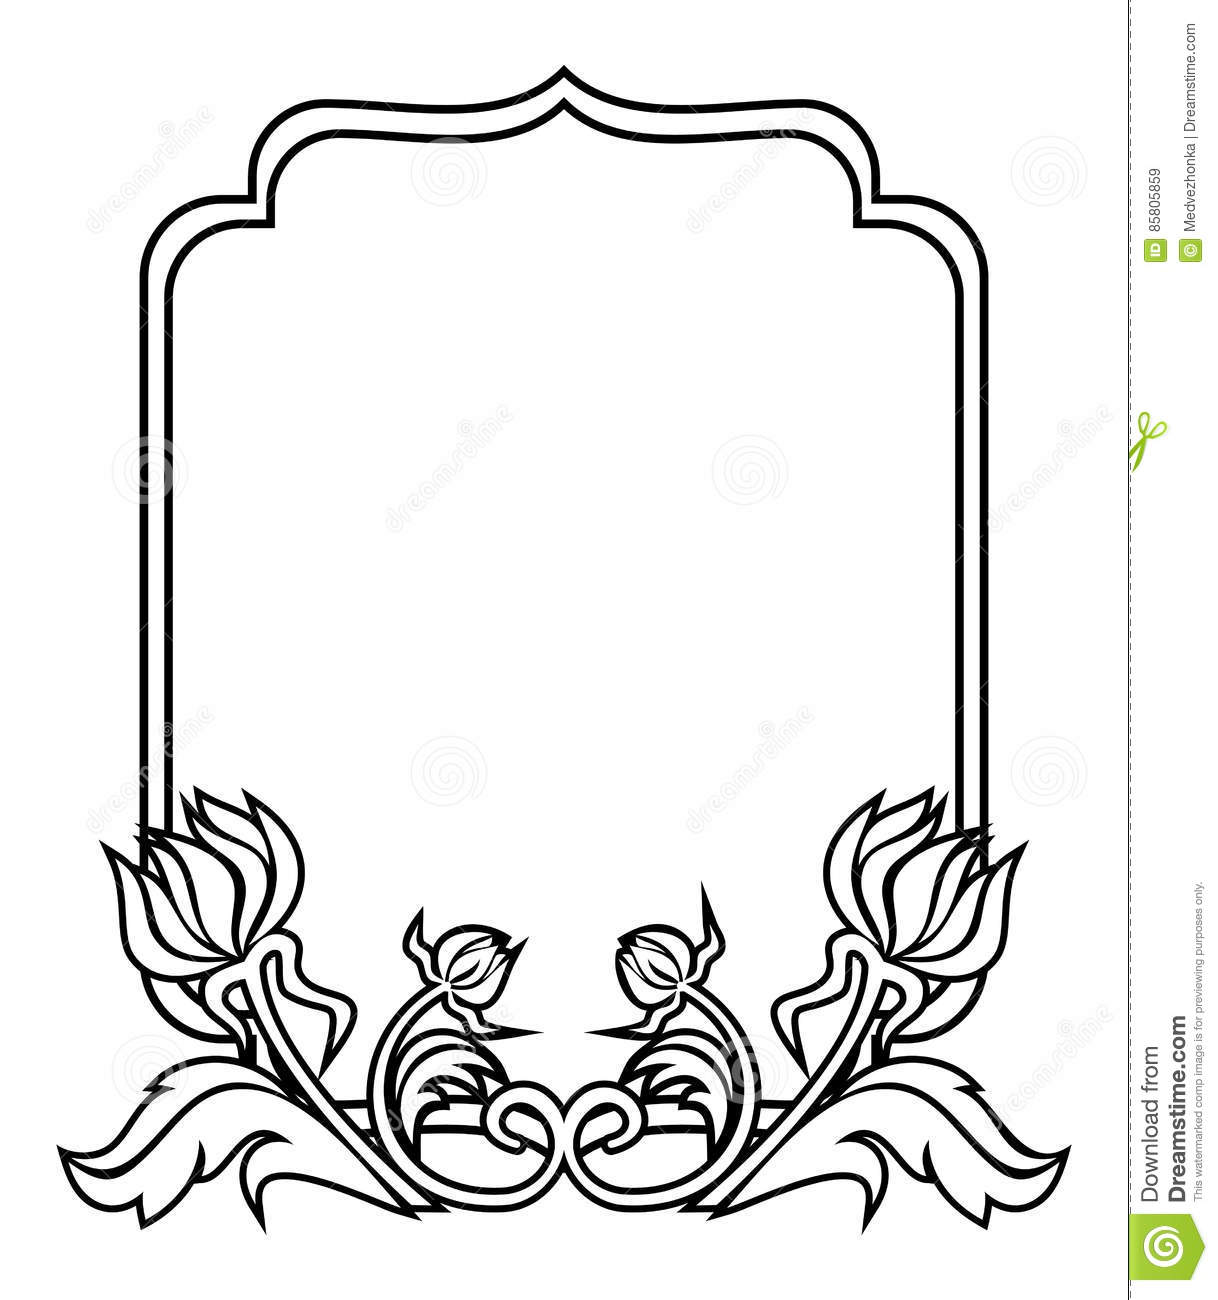 Black And White Frame With Flowers Silhouettes Raster Clip Art